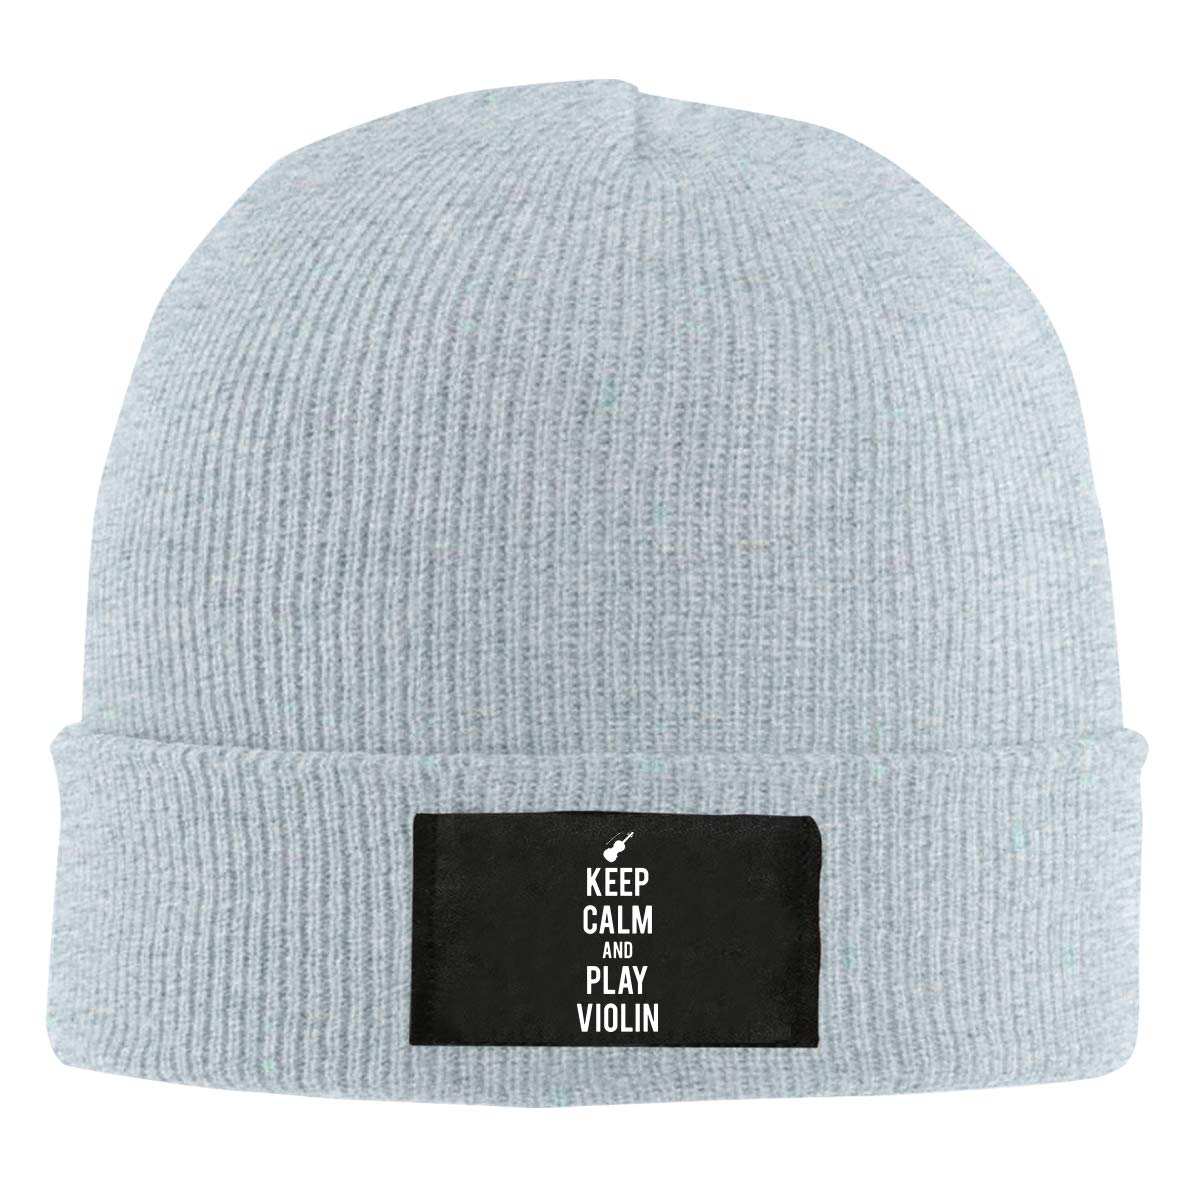 Keep Calm and Play Violin Unisex Knitted Hat Winter Warm Snowboarding Hat